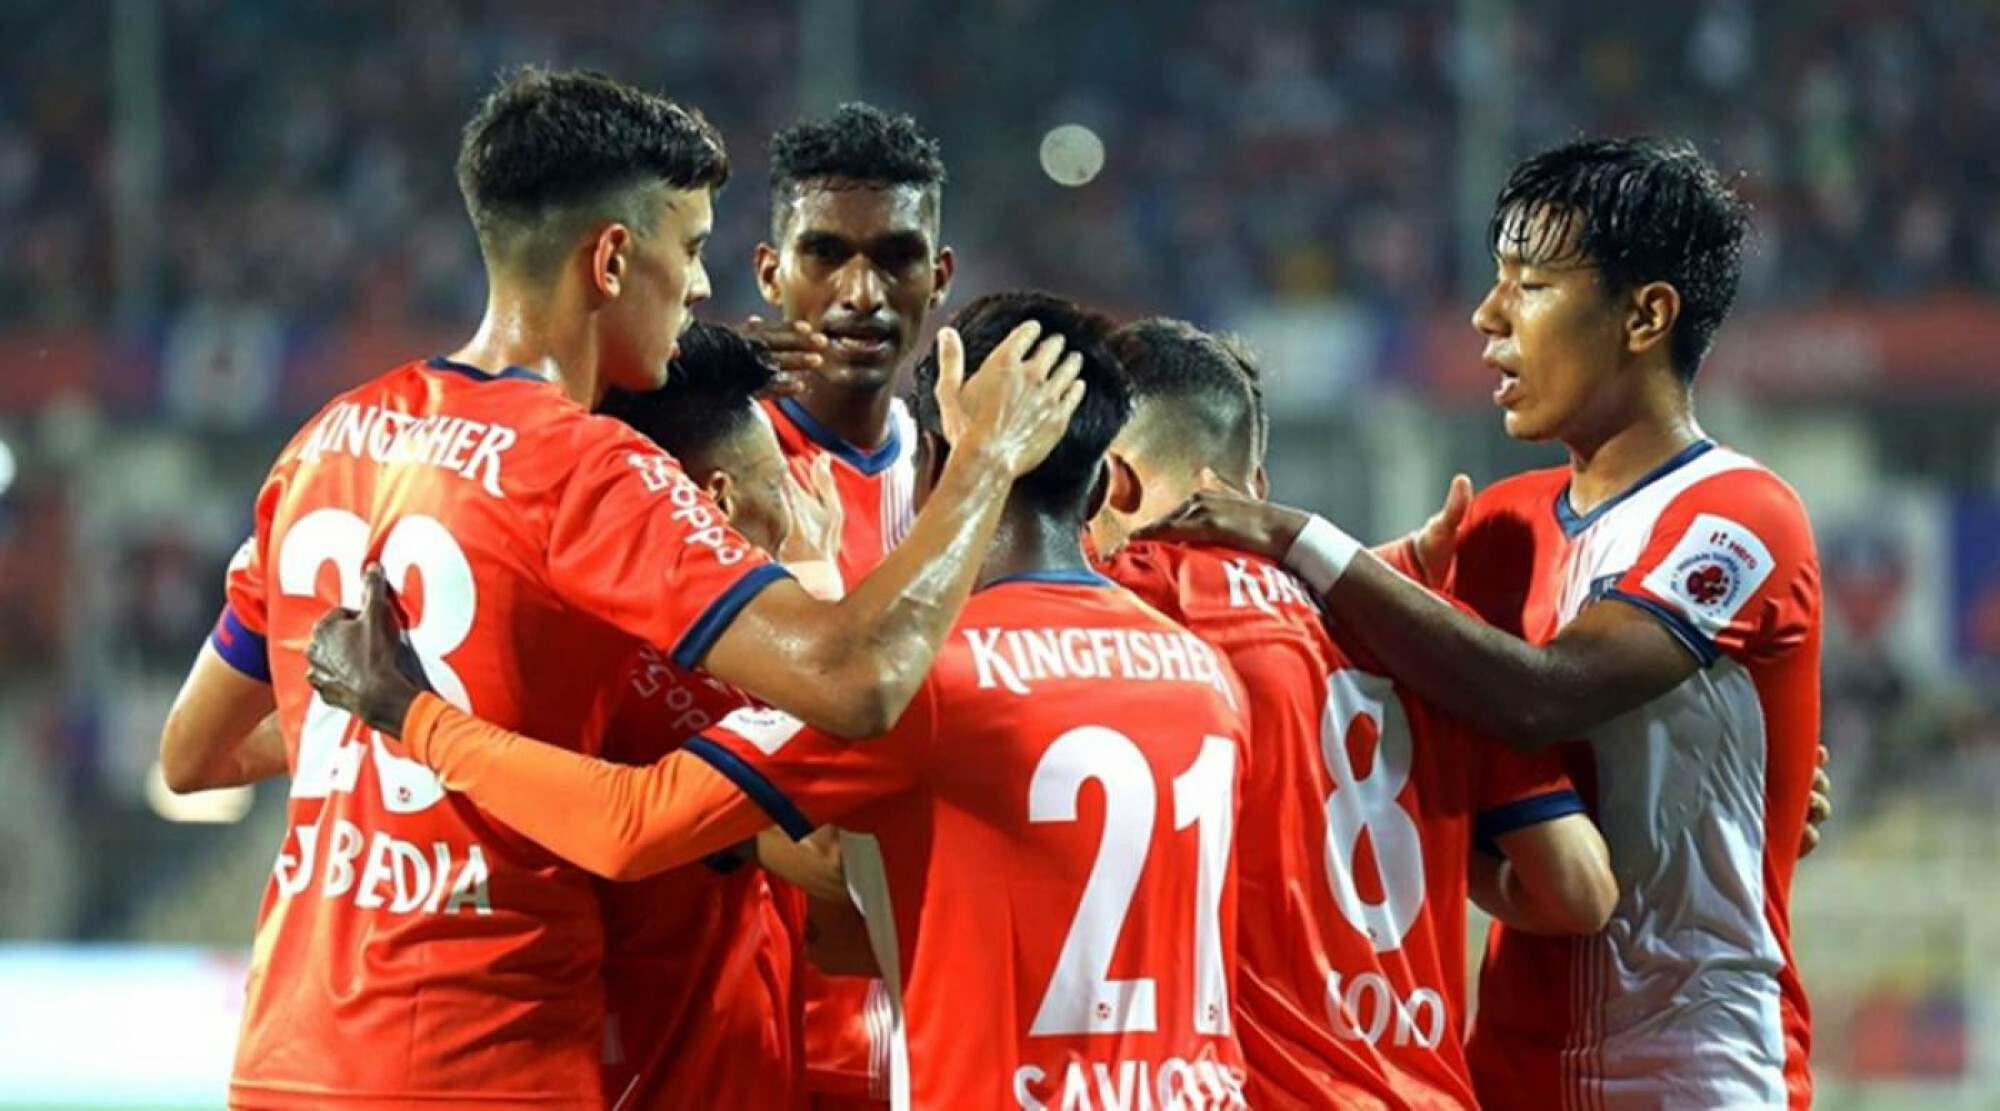 ISL 2018-19: FC Goa secure second position in the table with win over Chennaiyin.